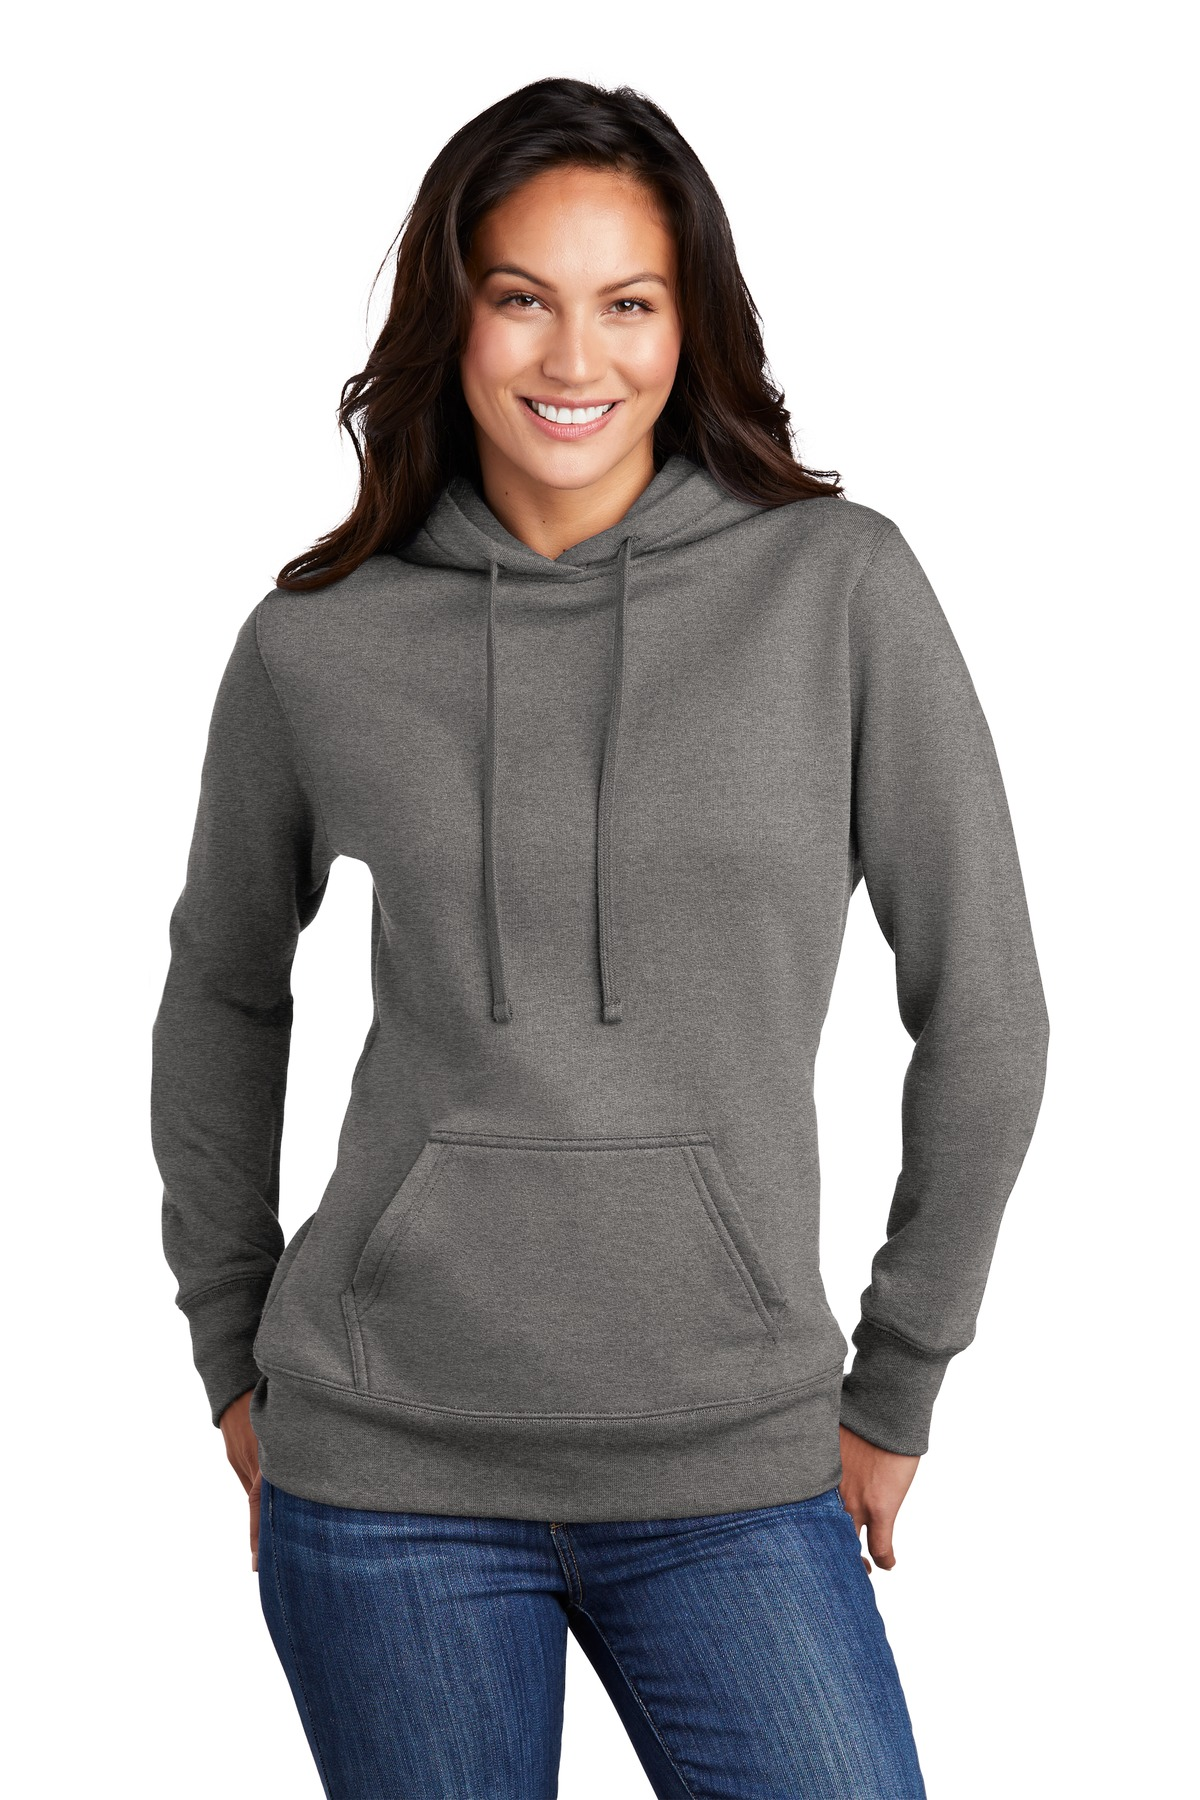 Port & Company  ®  Ladies Core Fleece Pullover Hooded Sweatshirt LPC78H - Graphite Heather